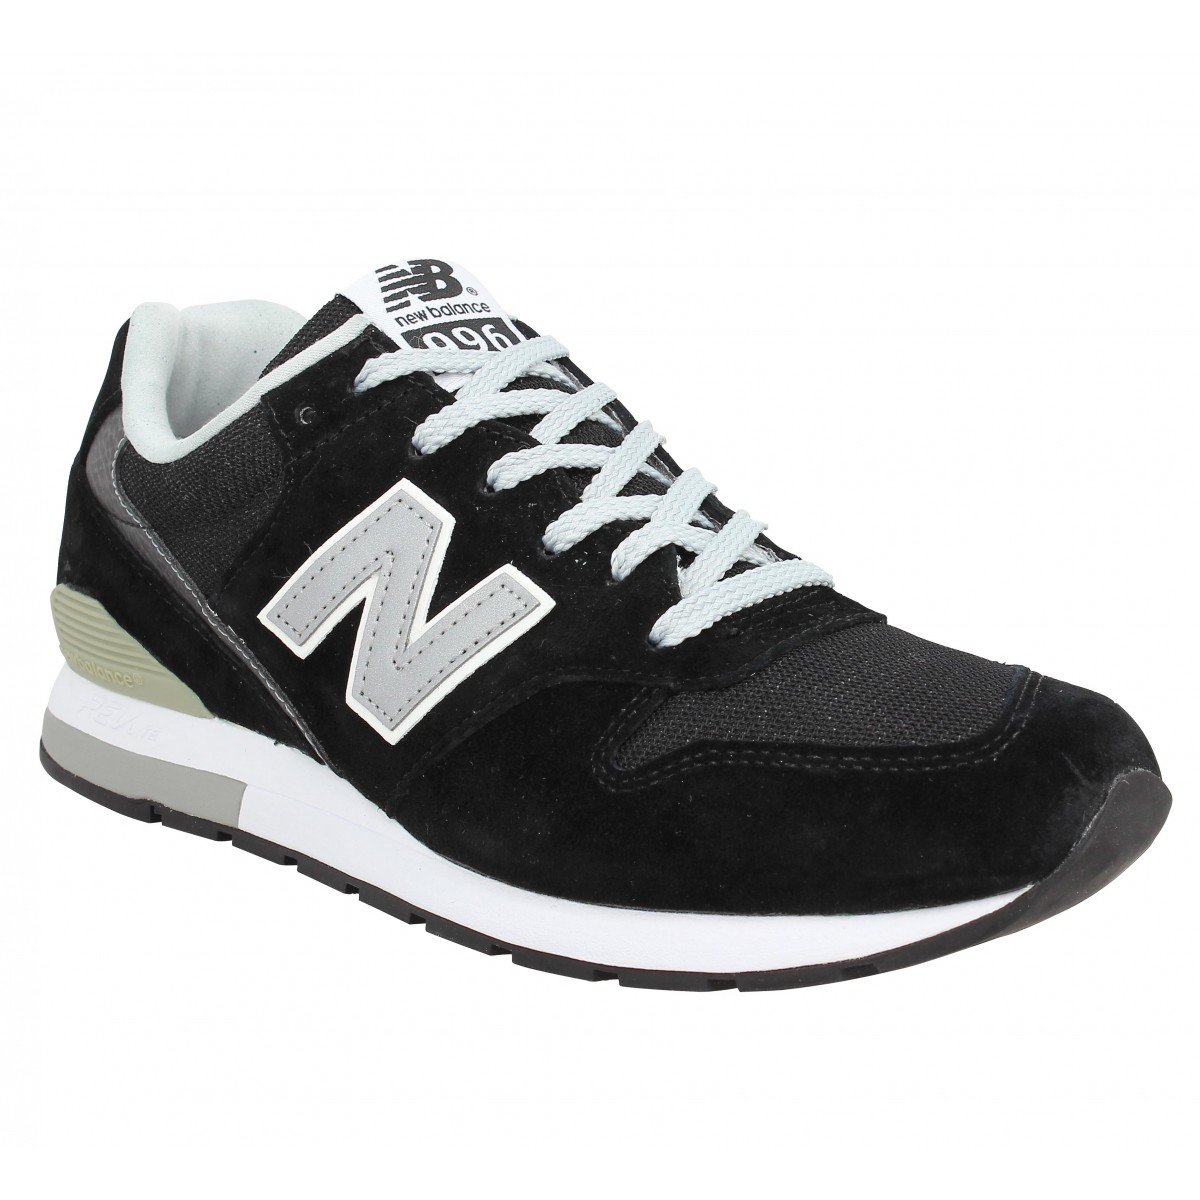 Baskets NEW BALANCE MRL 996 velours + toile Noir